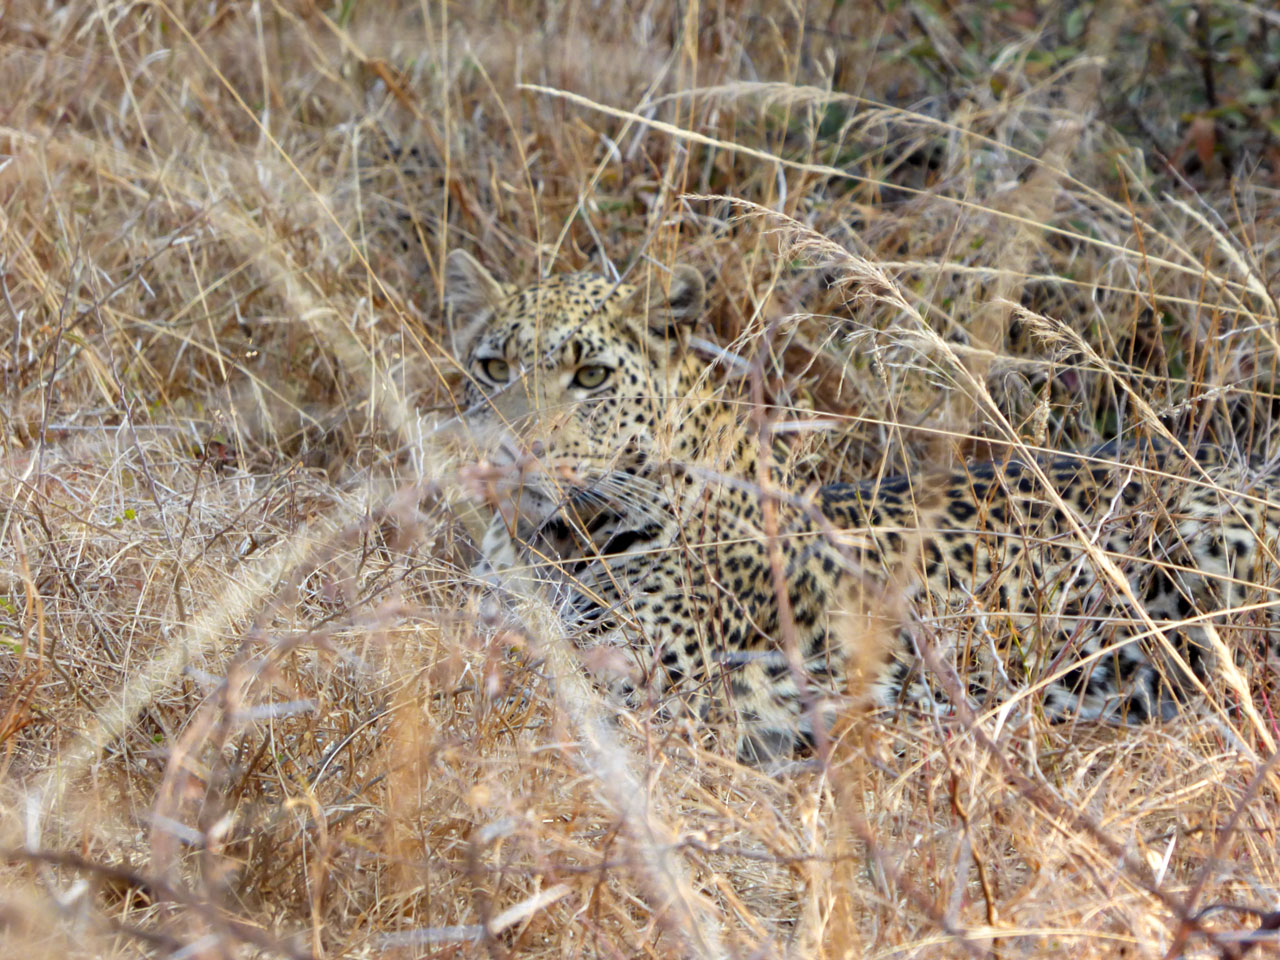 Leopard in the undergrowth at Sanctuary Makanyane, South Africa